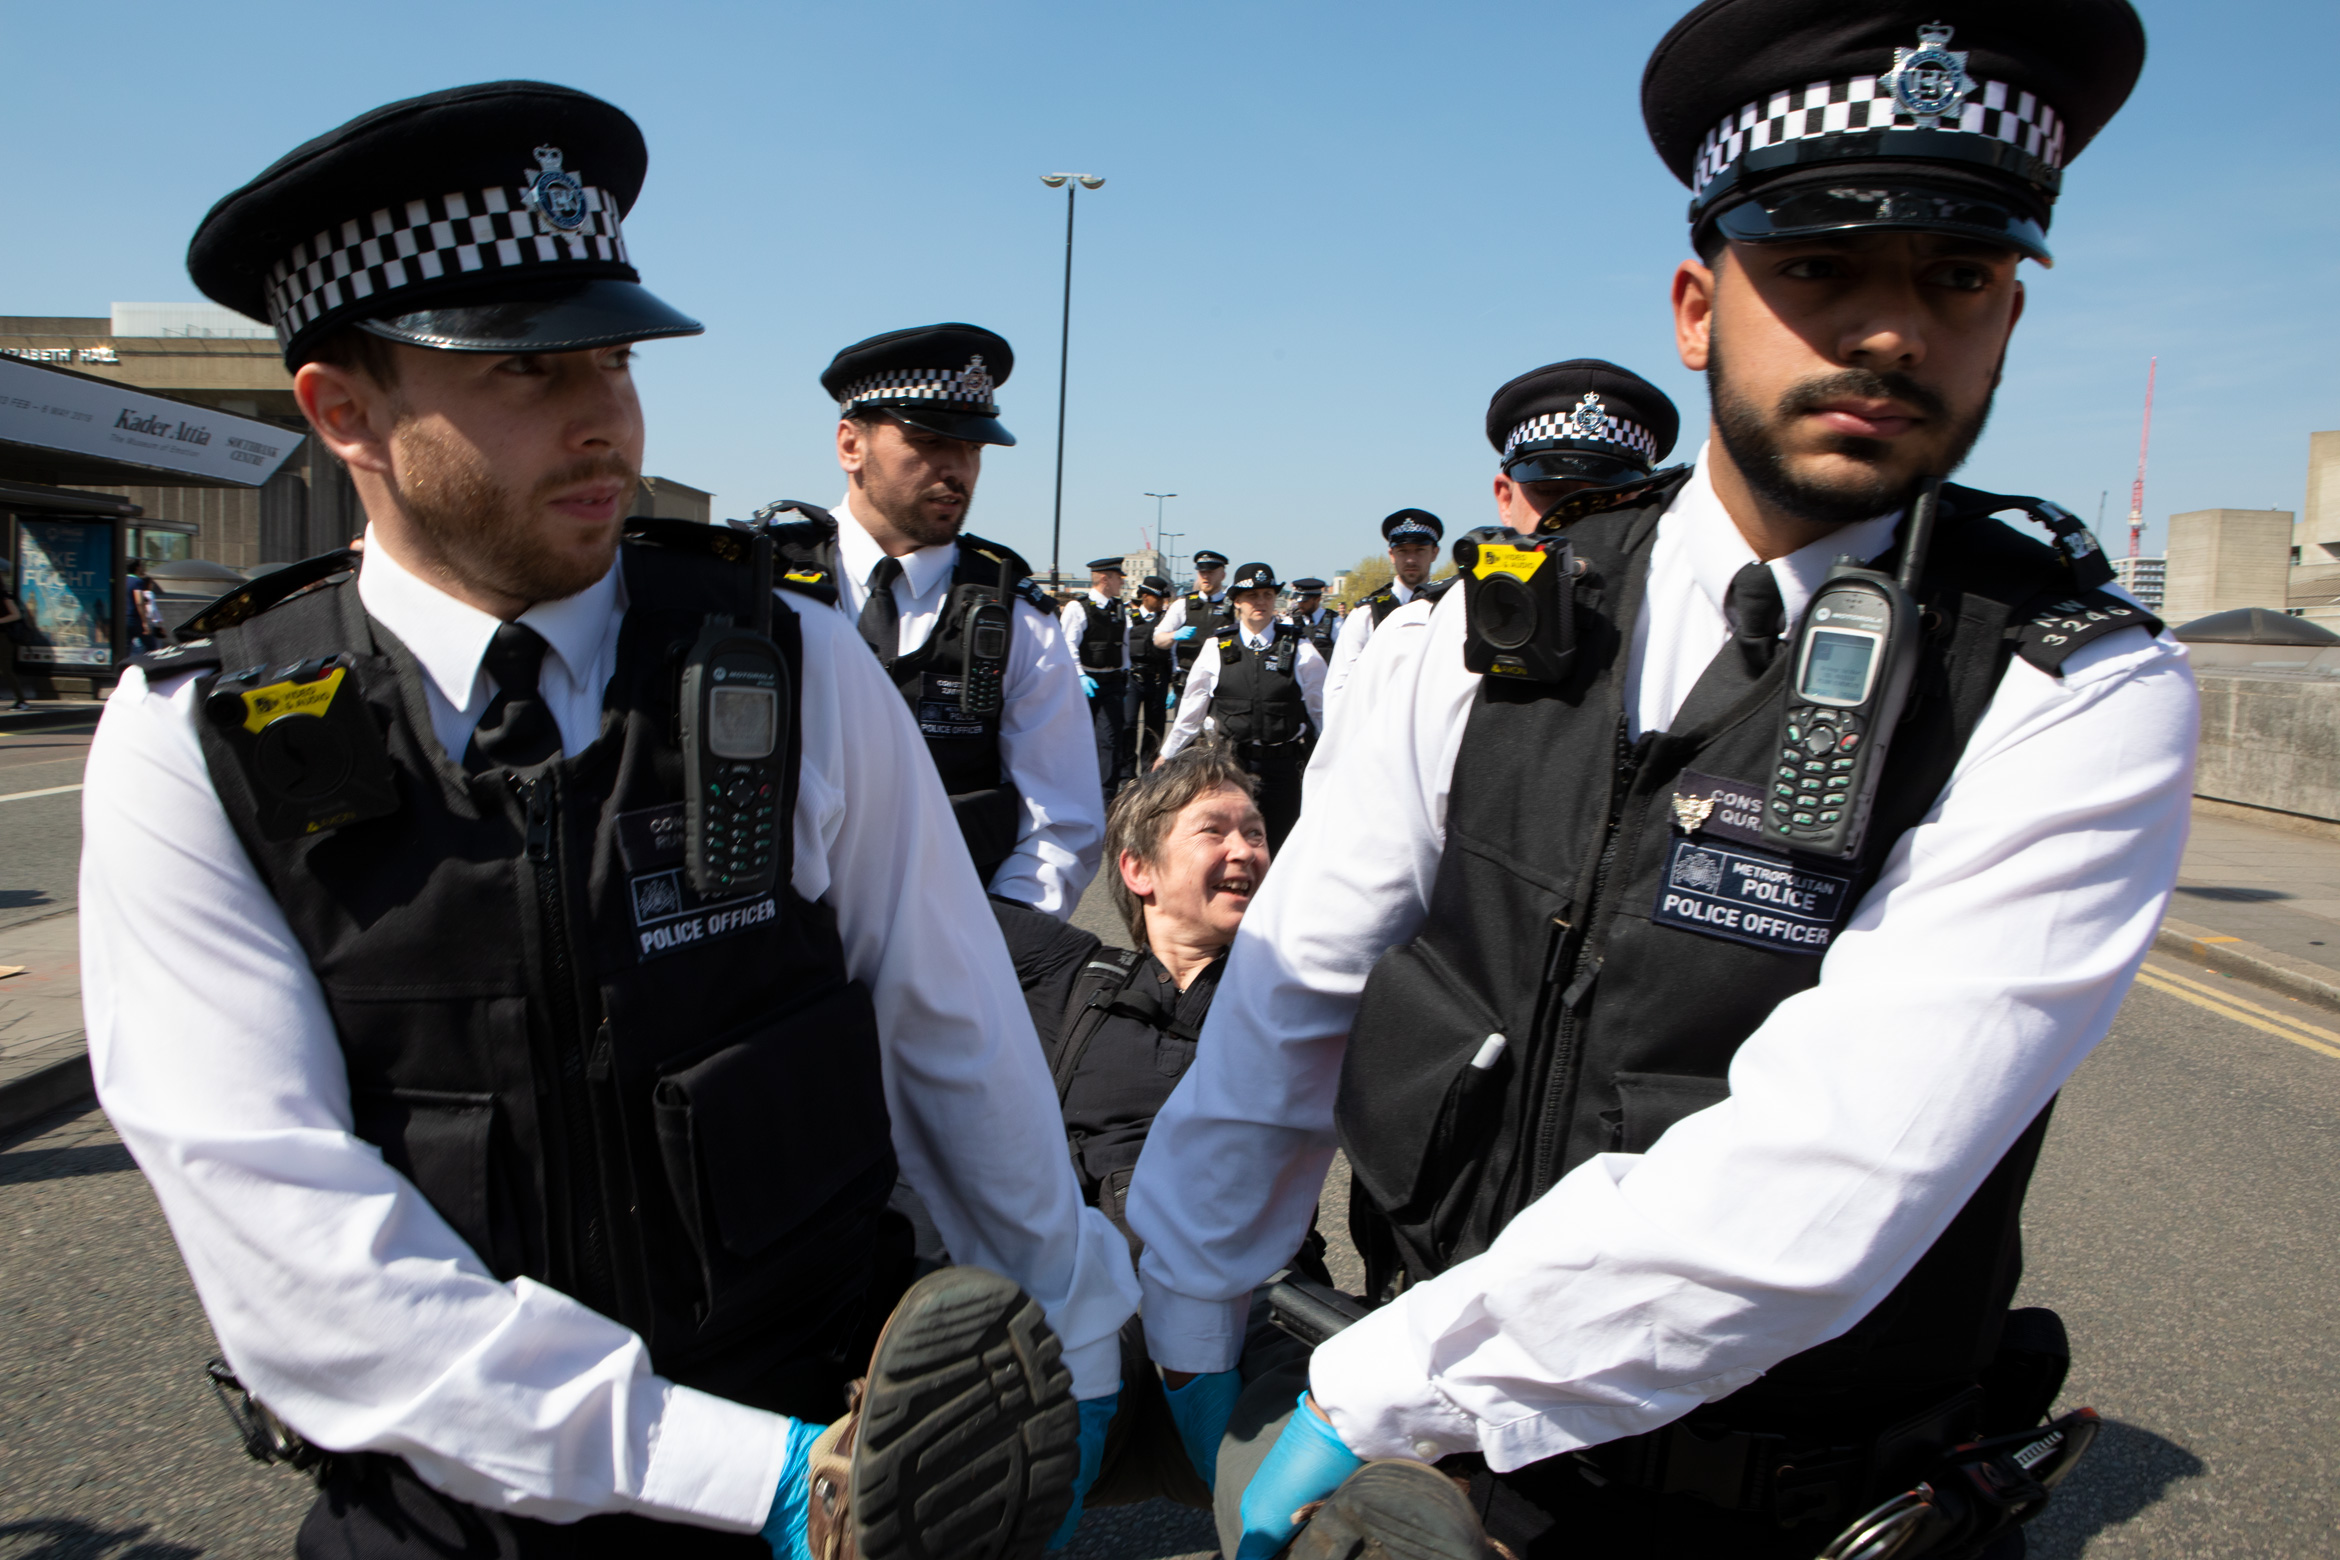 london-met-police-arrests-waterloo-bridge